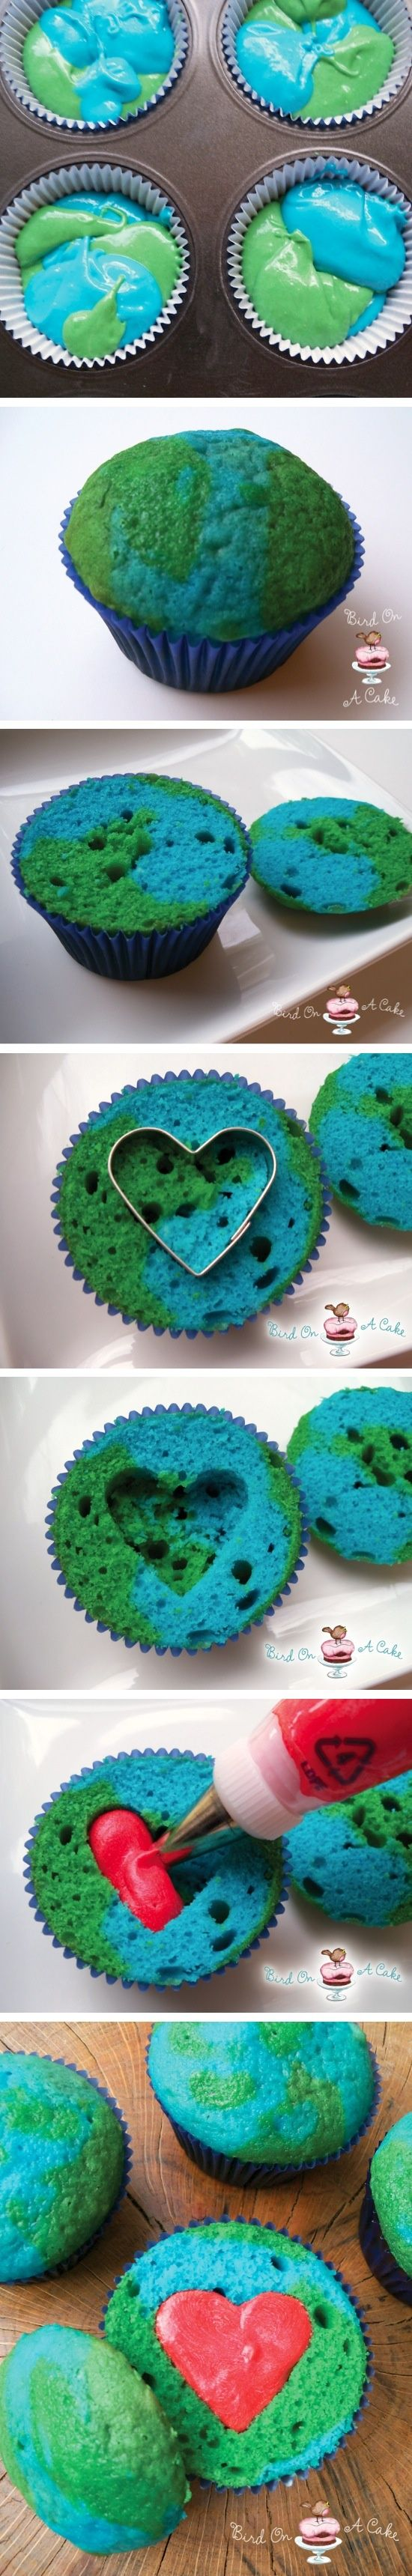 Earth Day Cupcakes!: Earth Cupcakes, Sweet, Food, Cup Cake, Earth Day, April 22Nd, Cupcake Idea, Dessert, Earthday